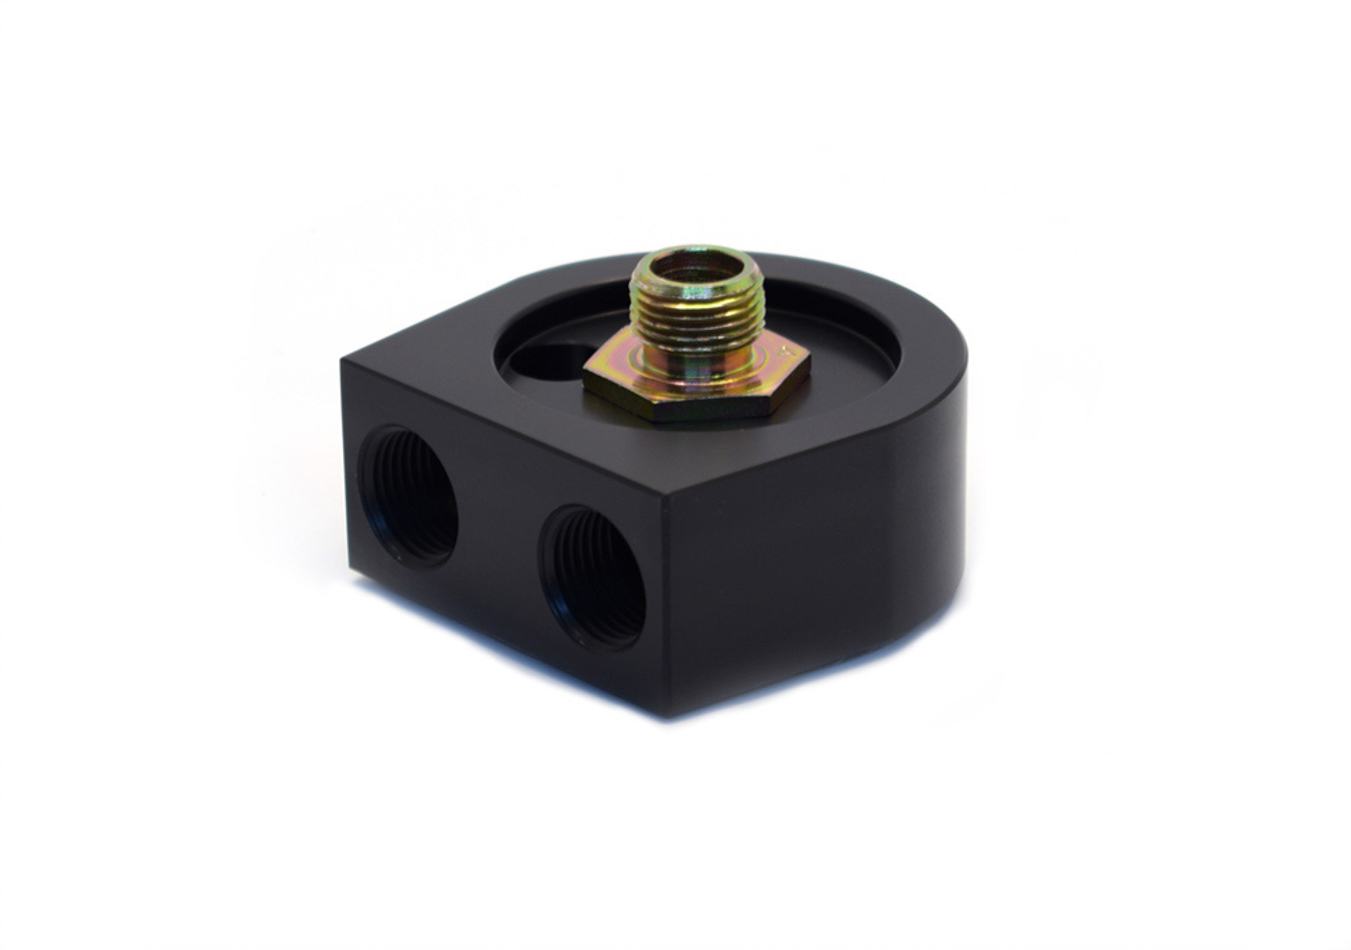 Canton 22-546 Oil Cooler Adapter, Sandwich, 13/16-16 in Center Thread, 1/2 in NPT Female Inlet, 1/2 in NPT Female Outlet, Billet Aluminum, Black Anodized, Each